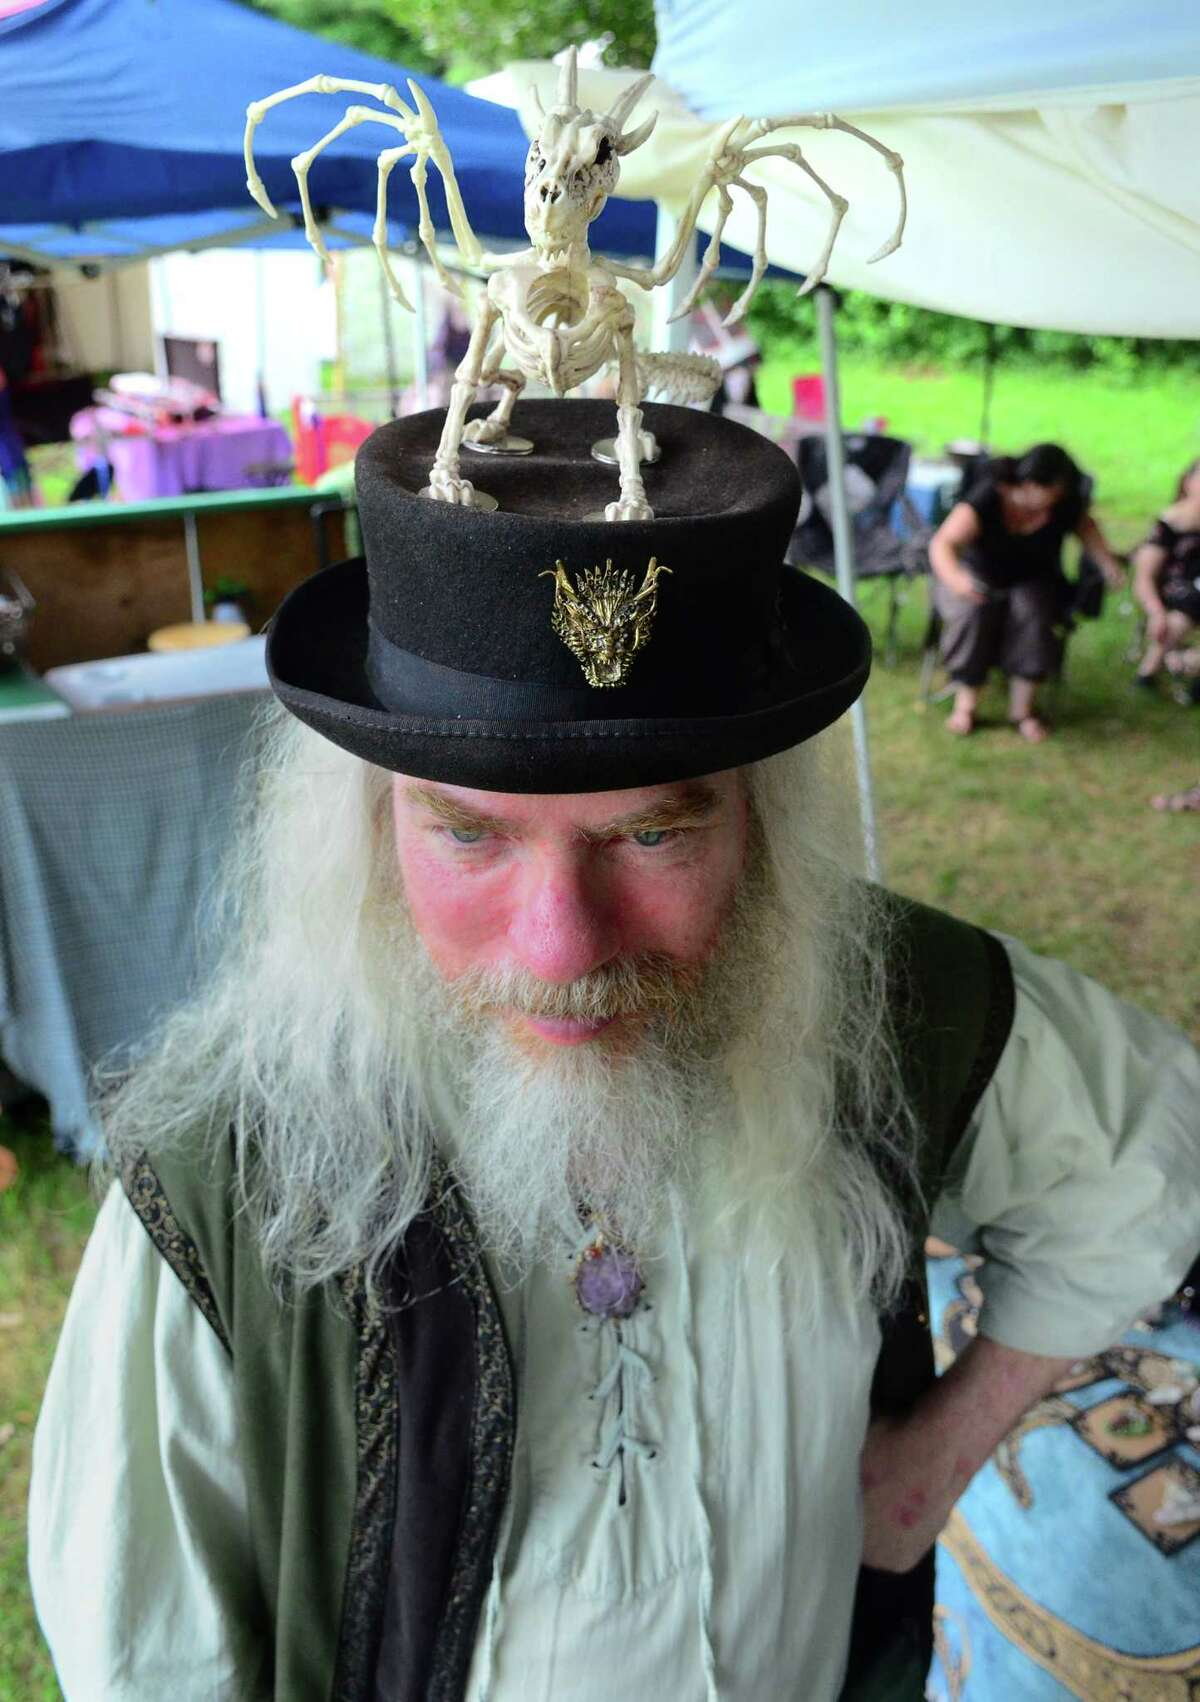 Wayne Tolbert, of Binghamton, NY, attends the annual Midsummer Fantasy Renaissance Faire at Warsaw Park in Ansonia, Conn., on Saturday July 6, 2019. The fair continues Sunday from 11 a.m. to 6 p.m.